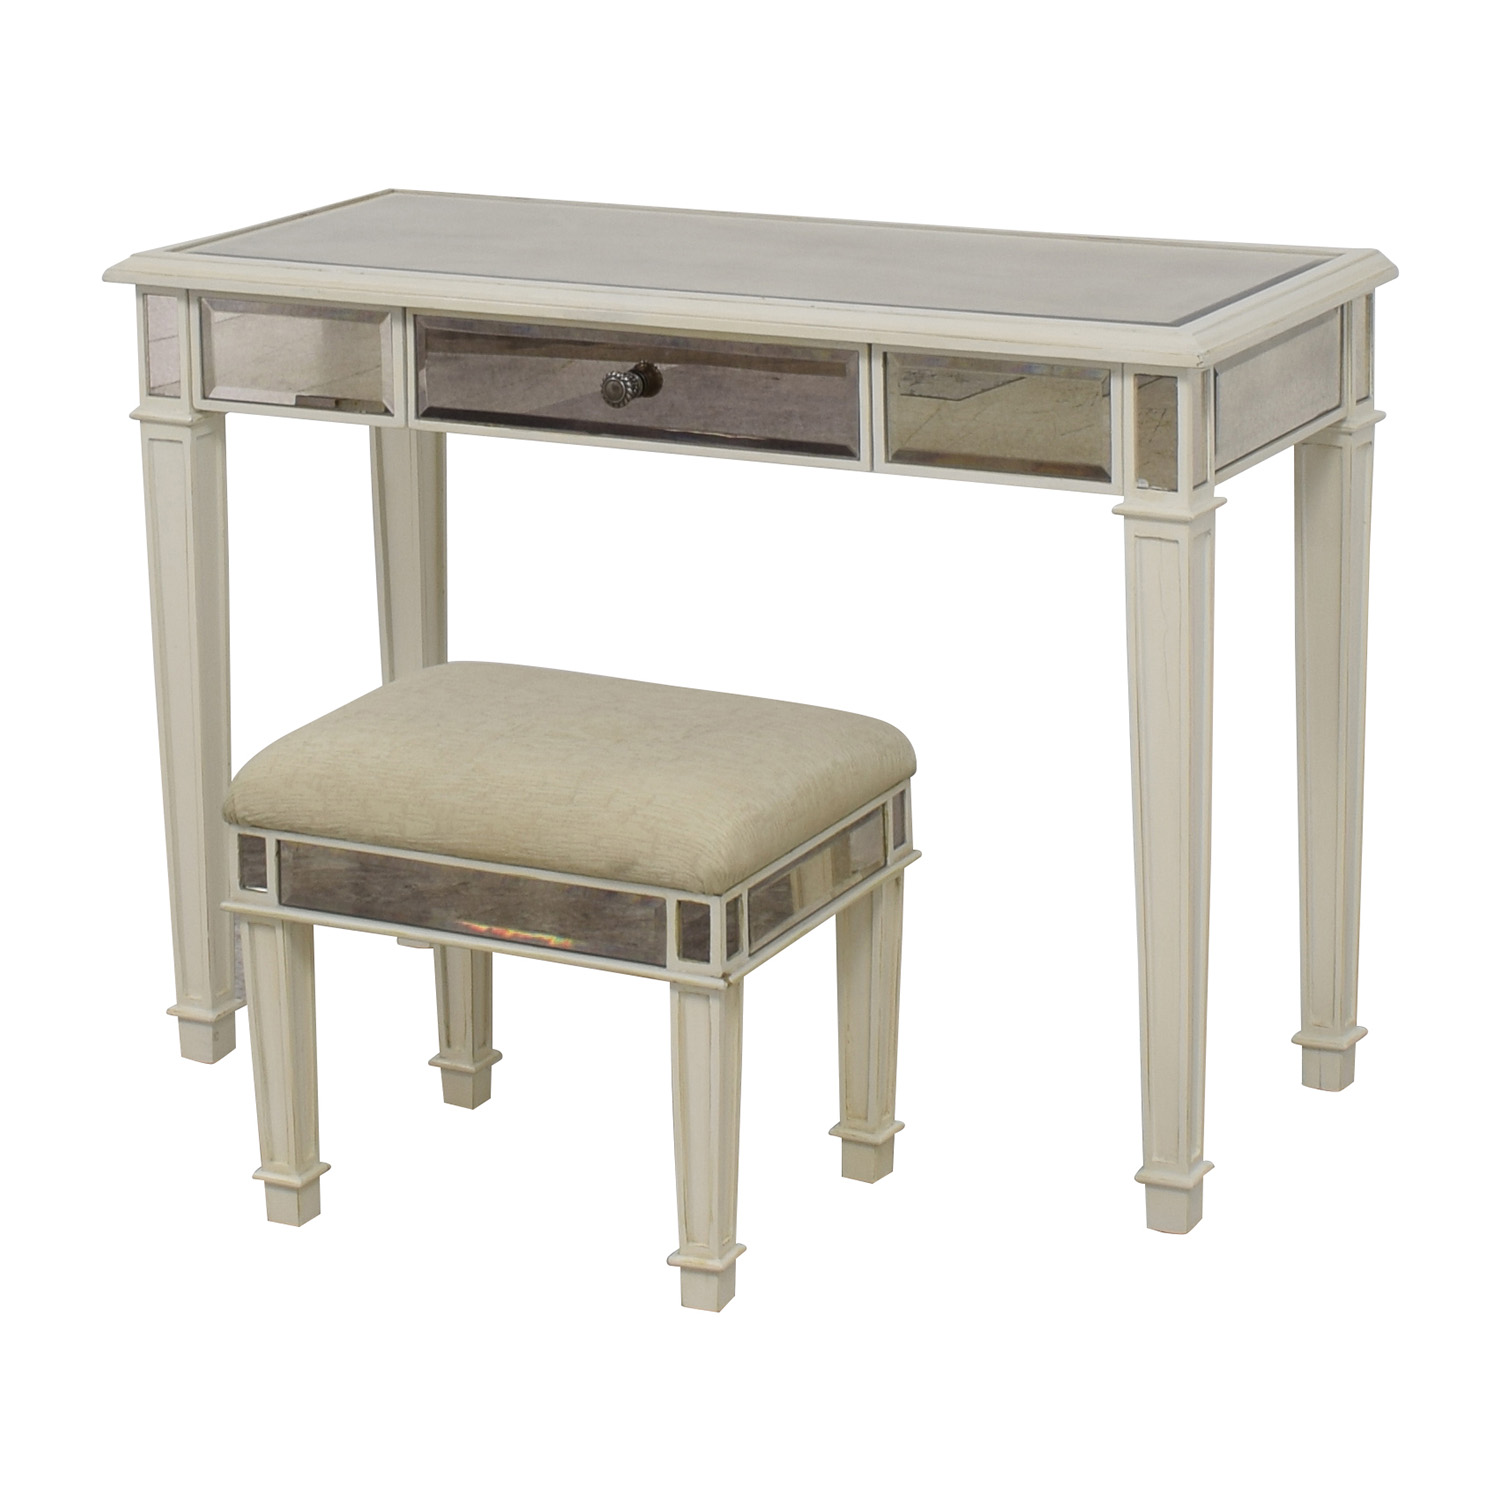 Picture of: 74 Off Pier 1 Pier 1 Imports Antique White Mirrored Vanity Table And Stool Tables